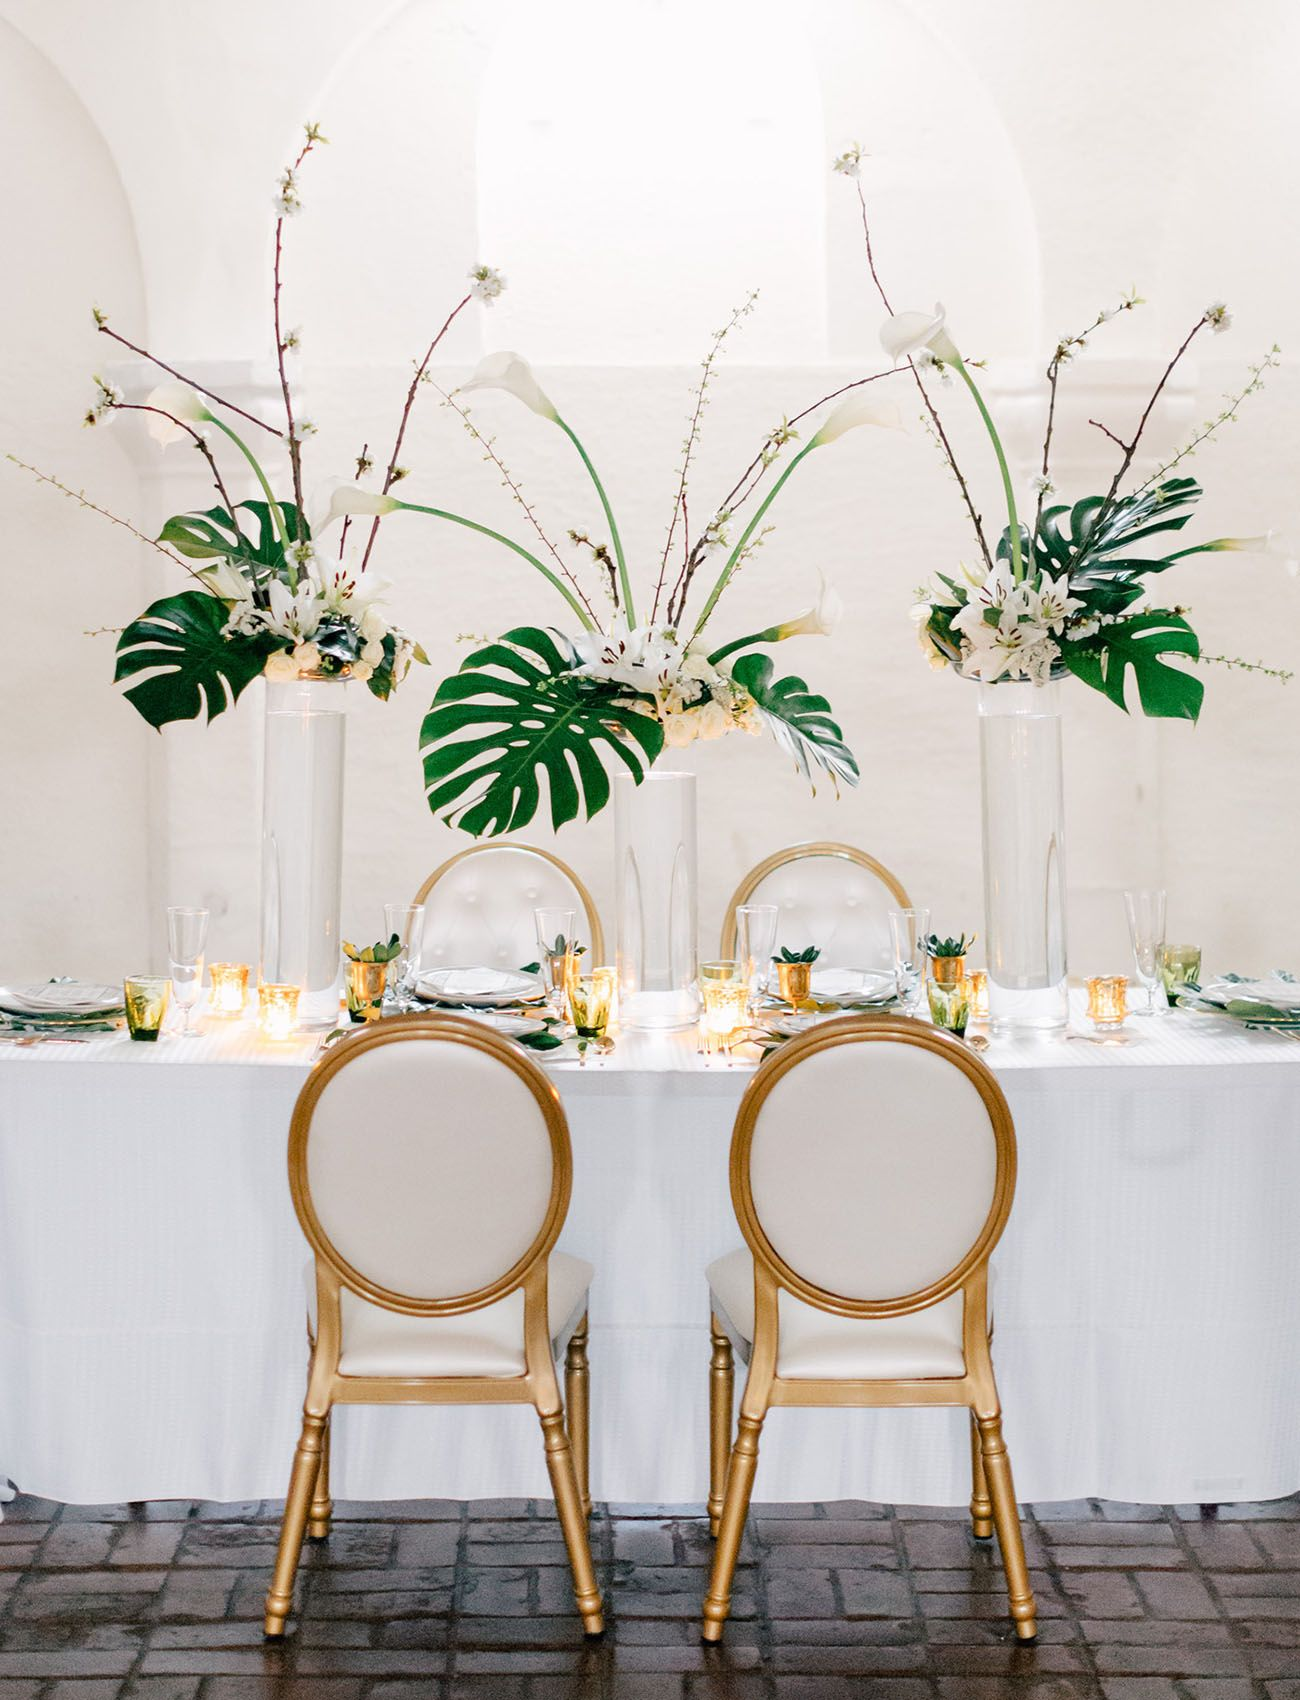 Modern Art Deco Wedding Inspiration | Pinterest | Modern art deco ...